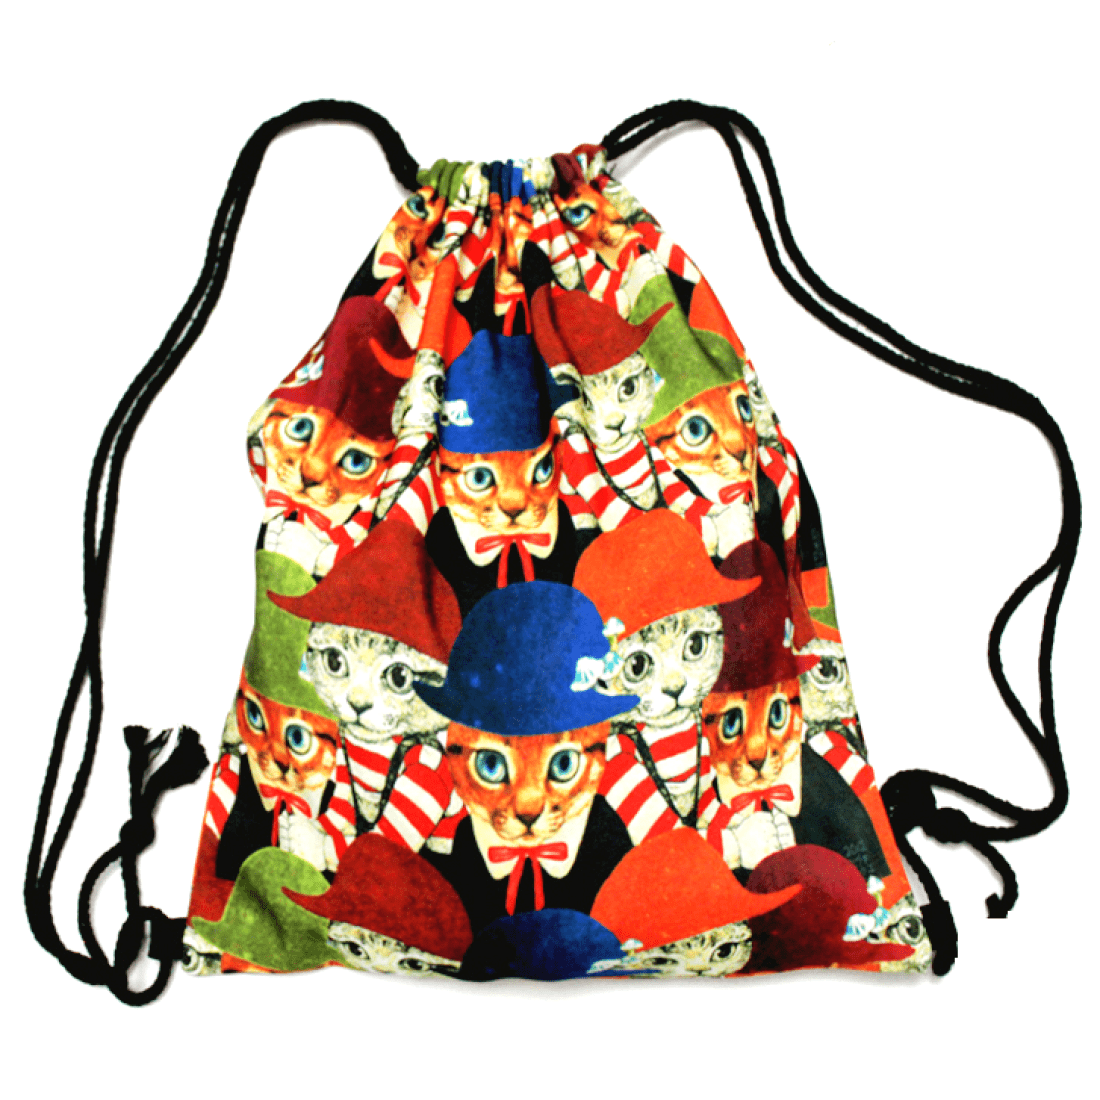 Kitty Cat in a Bowler Hat Animal Collage Print Drawstring Backpack Bag